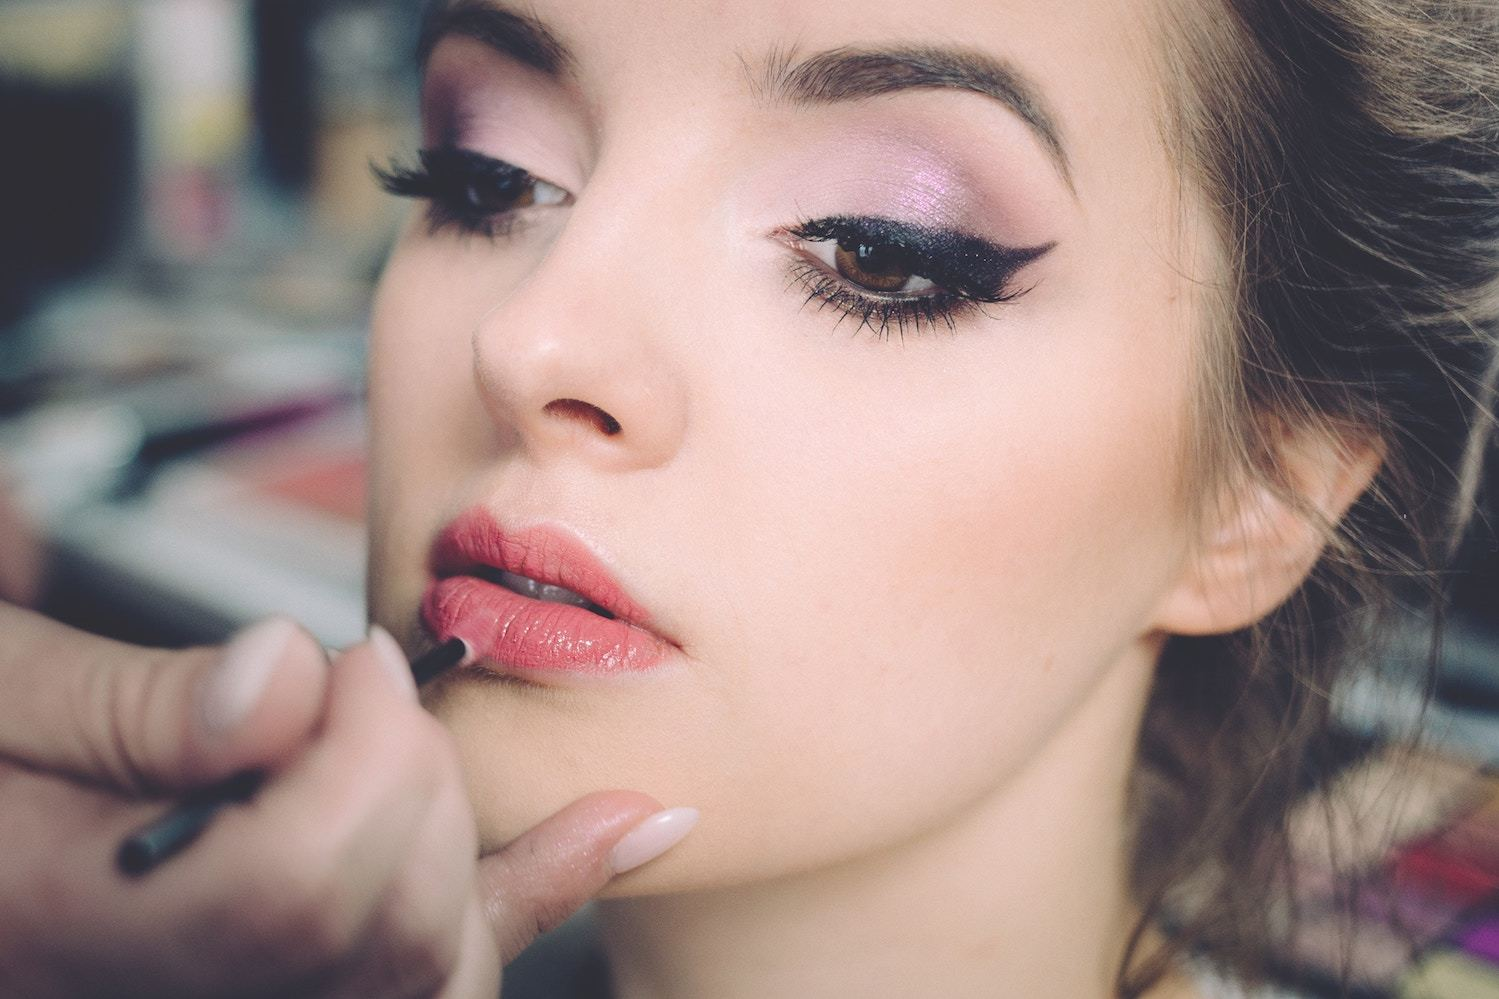 a woman having her makeup professionally done